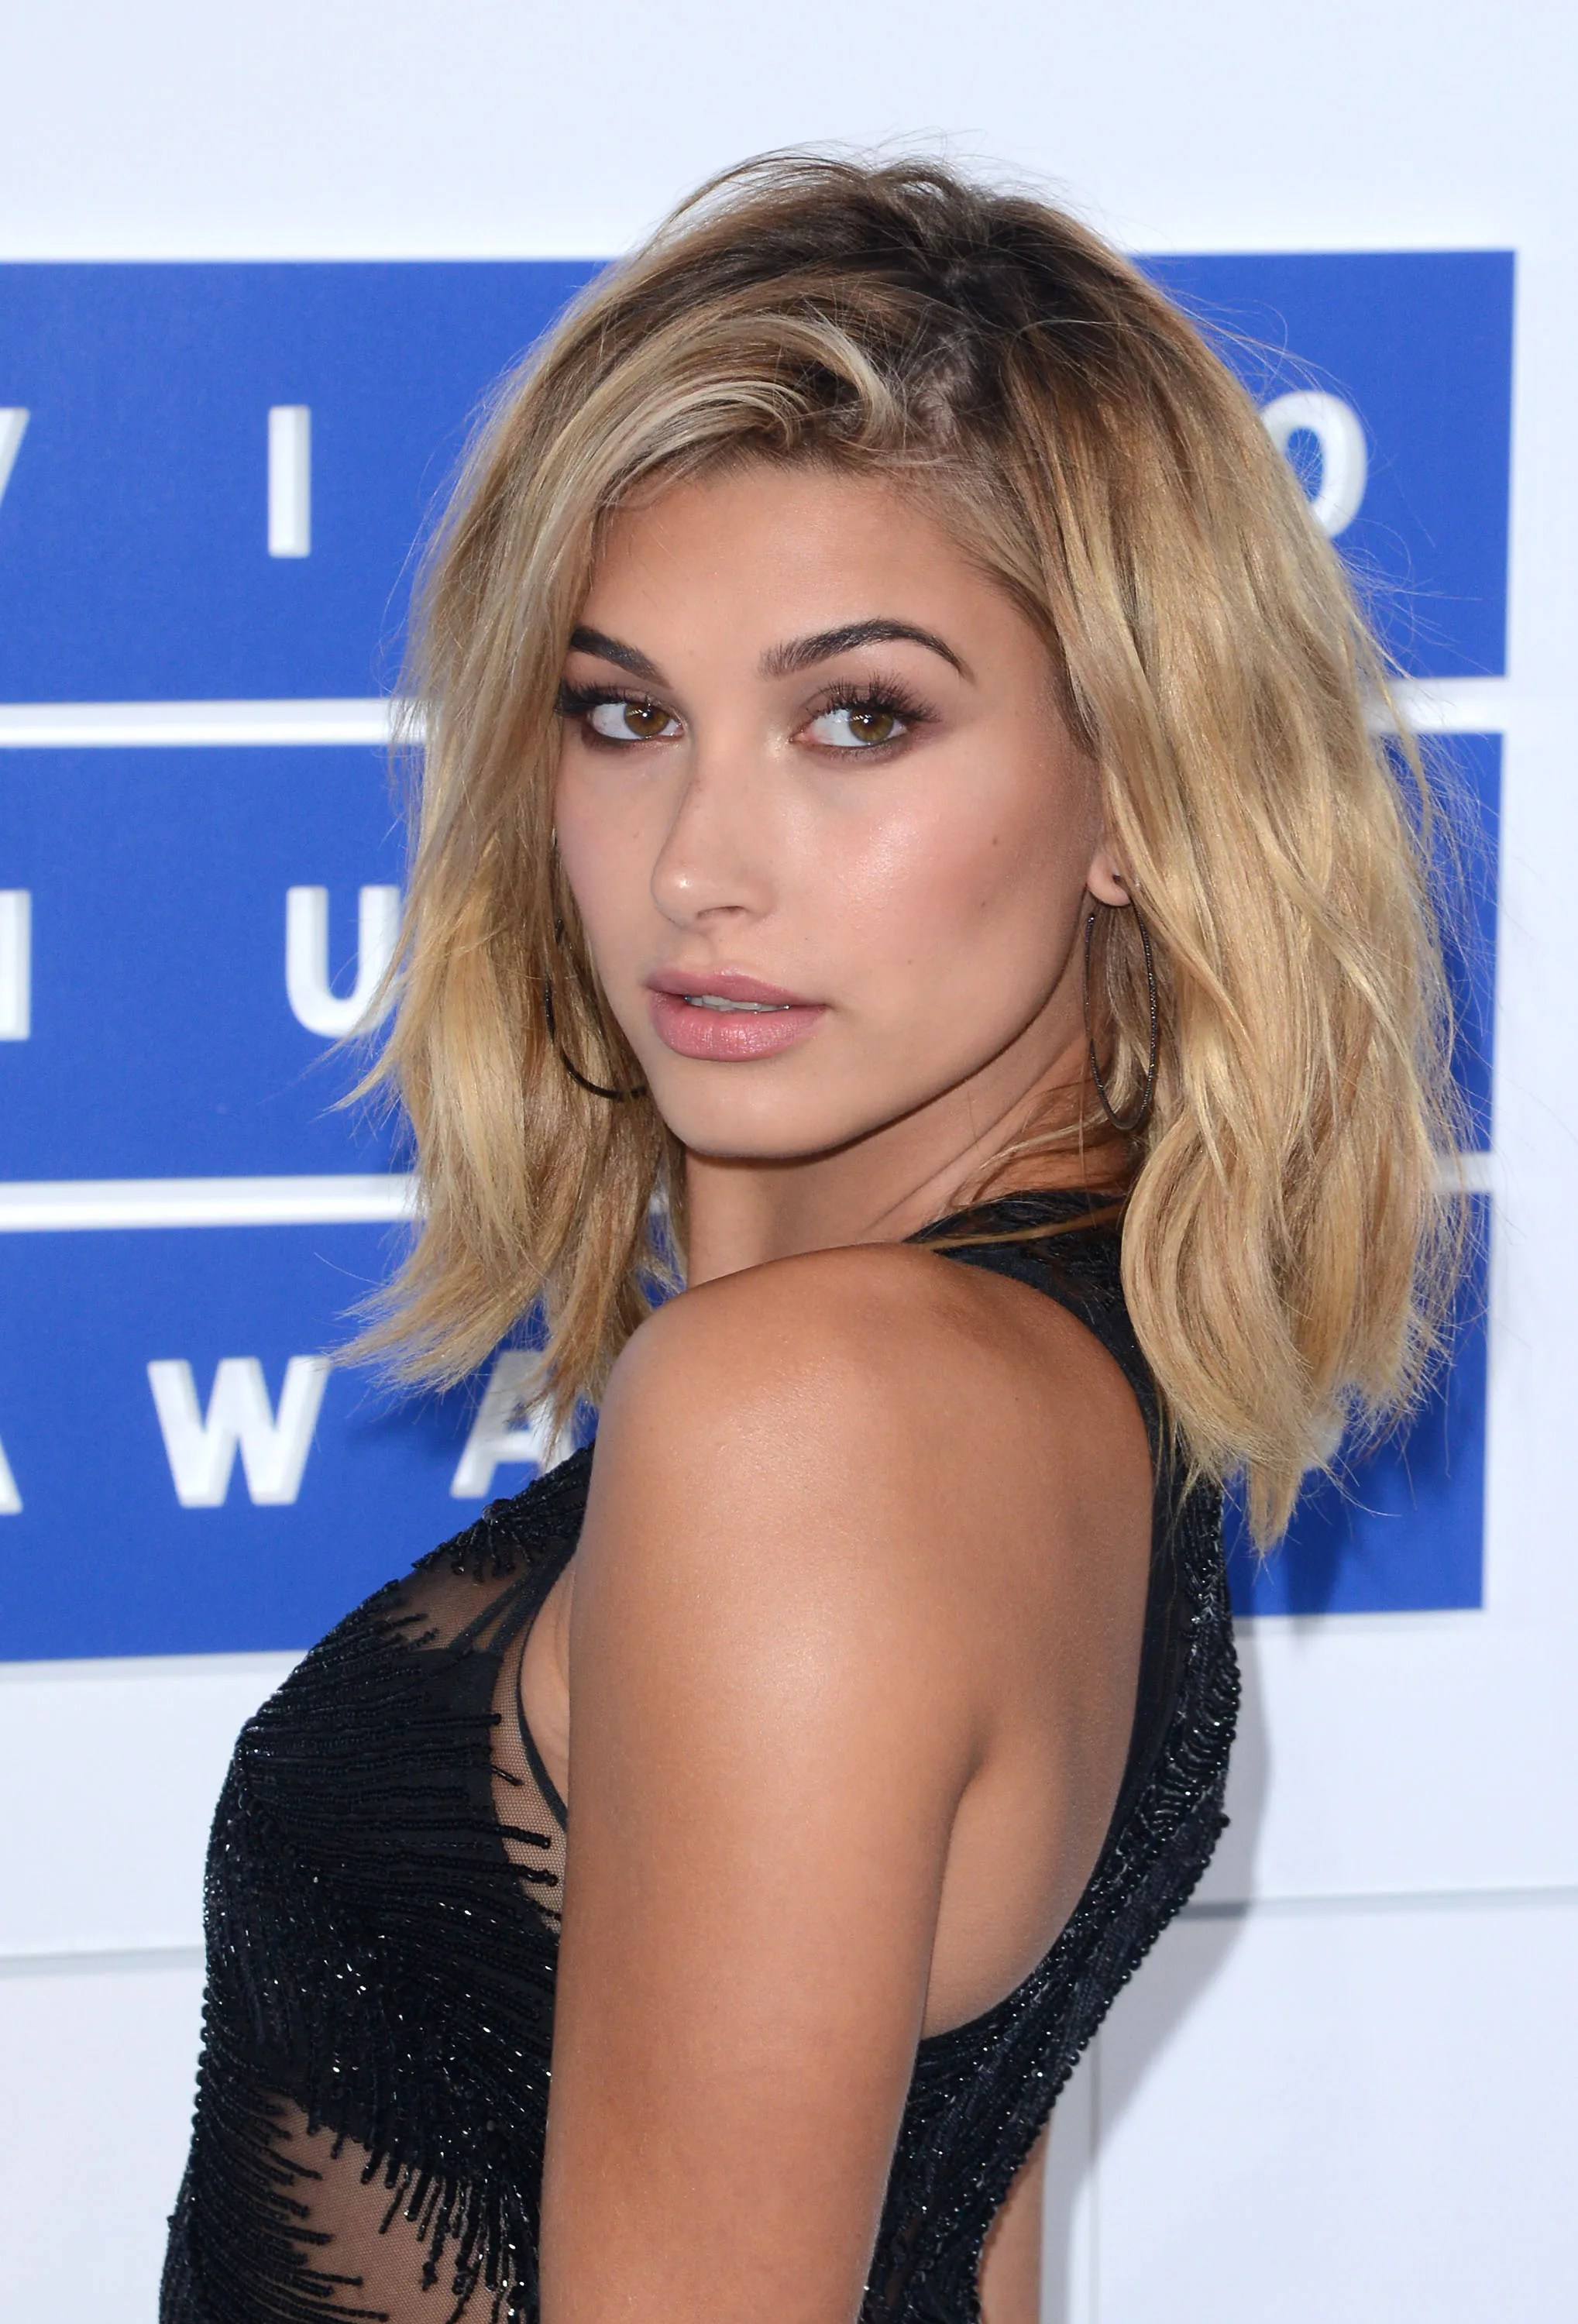 Hailey Baldwin Just Dyed Her Hair the Prettiest Rose Gold Color   Allure